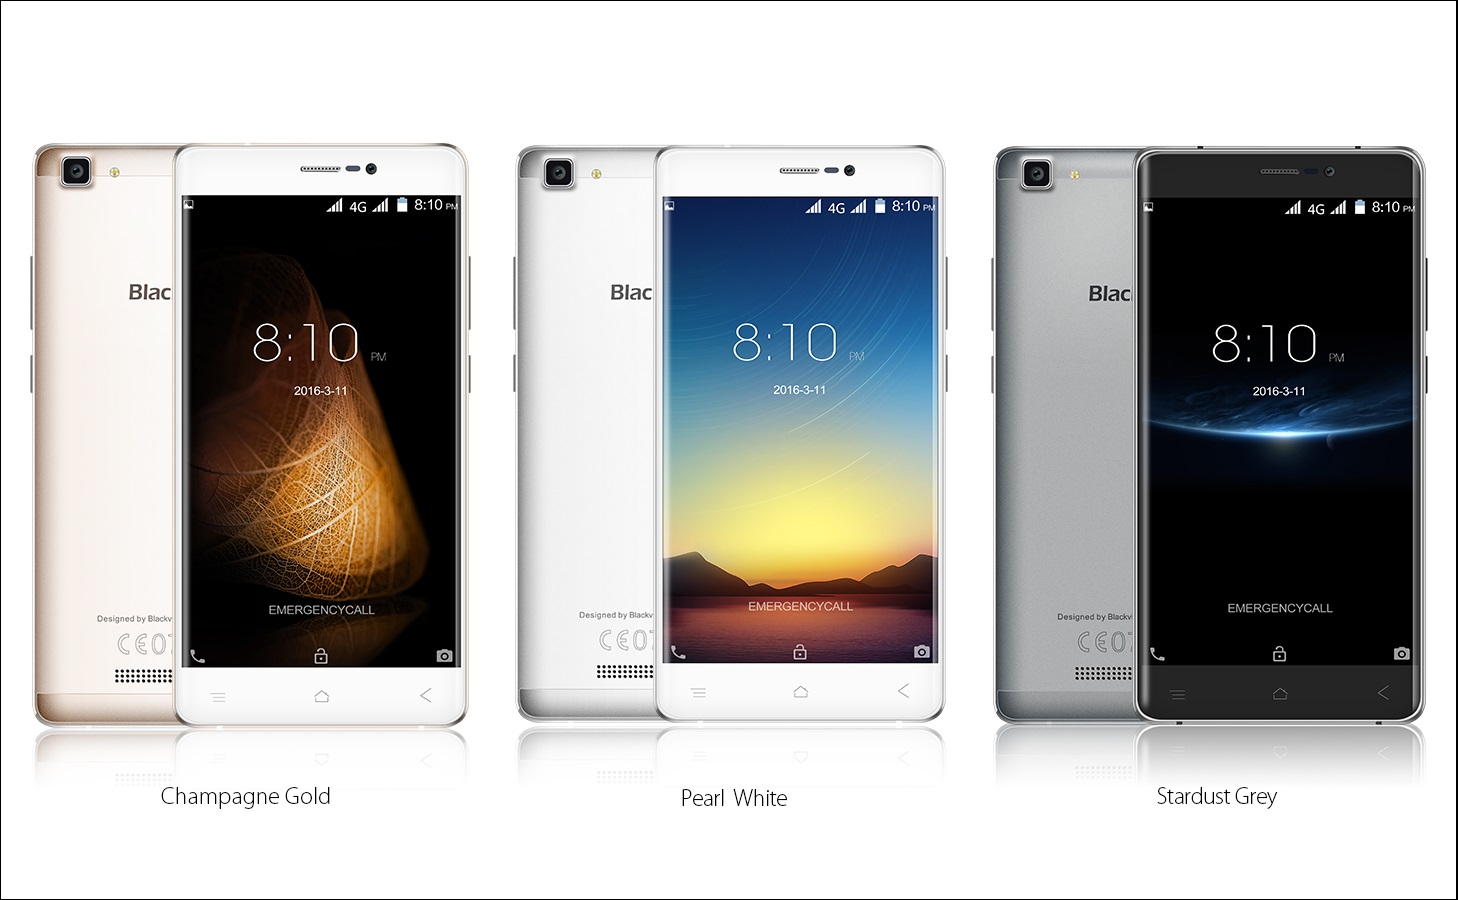 Blackview-A8-Max-smartphone-with-2GB-Of-RAM-Listed-on-the-Companys-Website.jpg